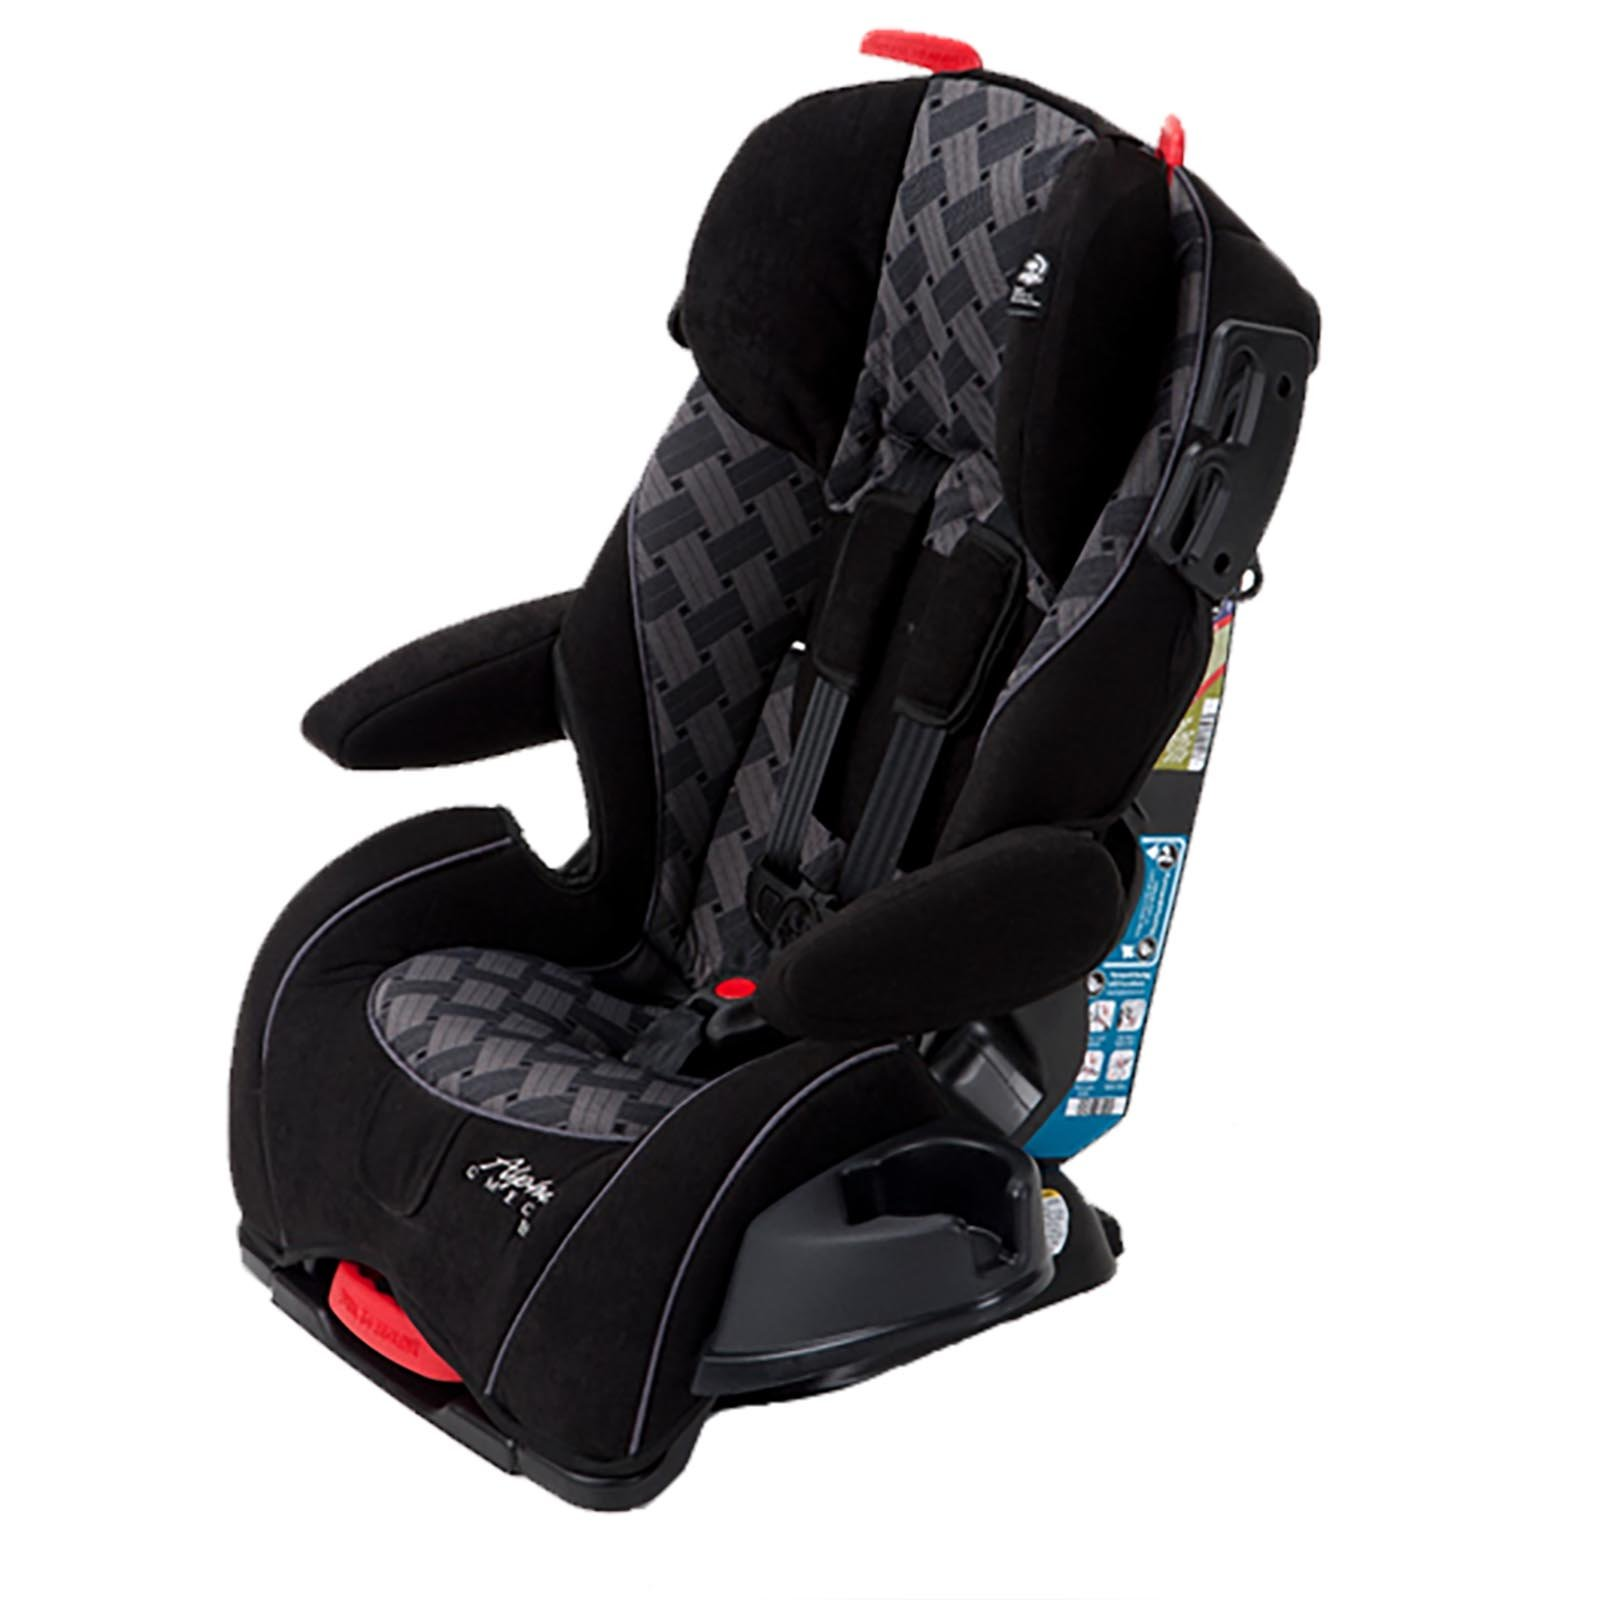 safety 1st alpha omega elite convertible baby car seat safety 1st alpha omega elite convertible. Black Bedroom Furniture Sets. Home Design Ideas